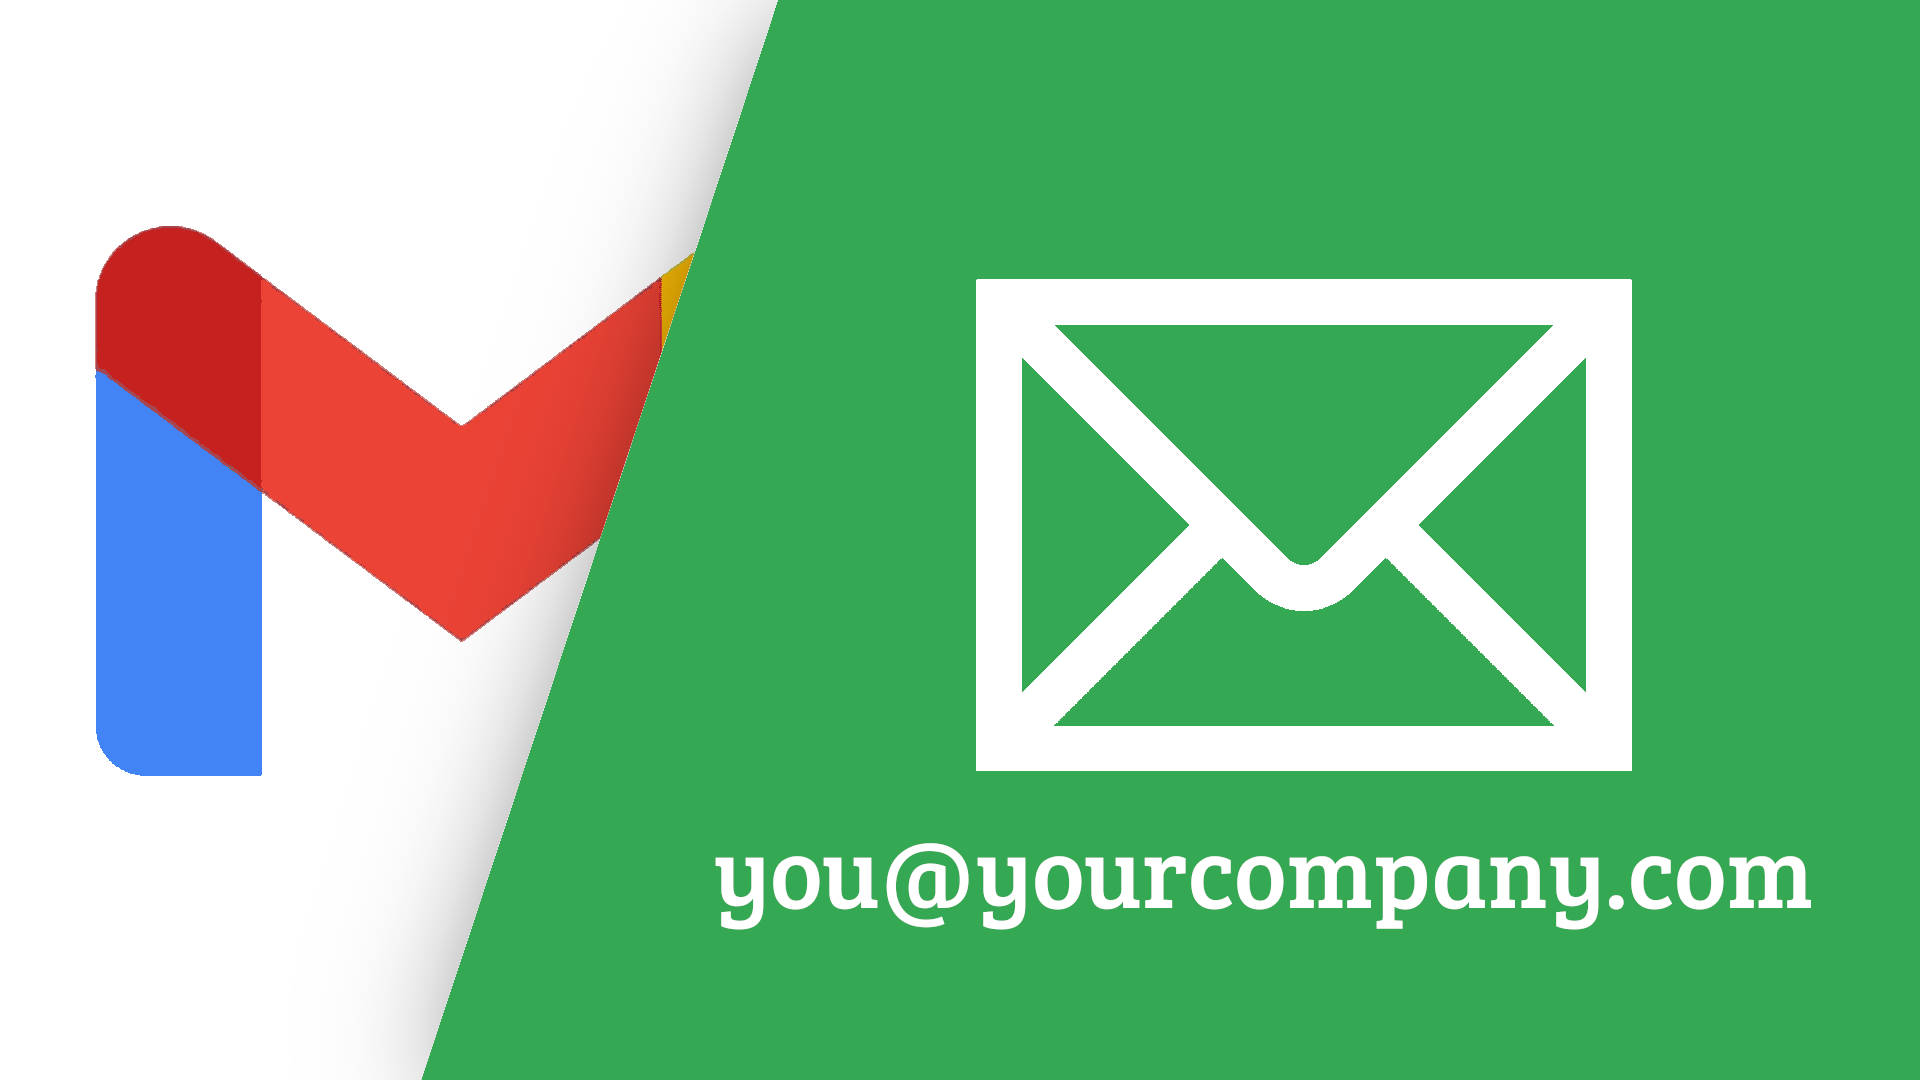 How to send and receive custom domain emails through gmail.